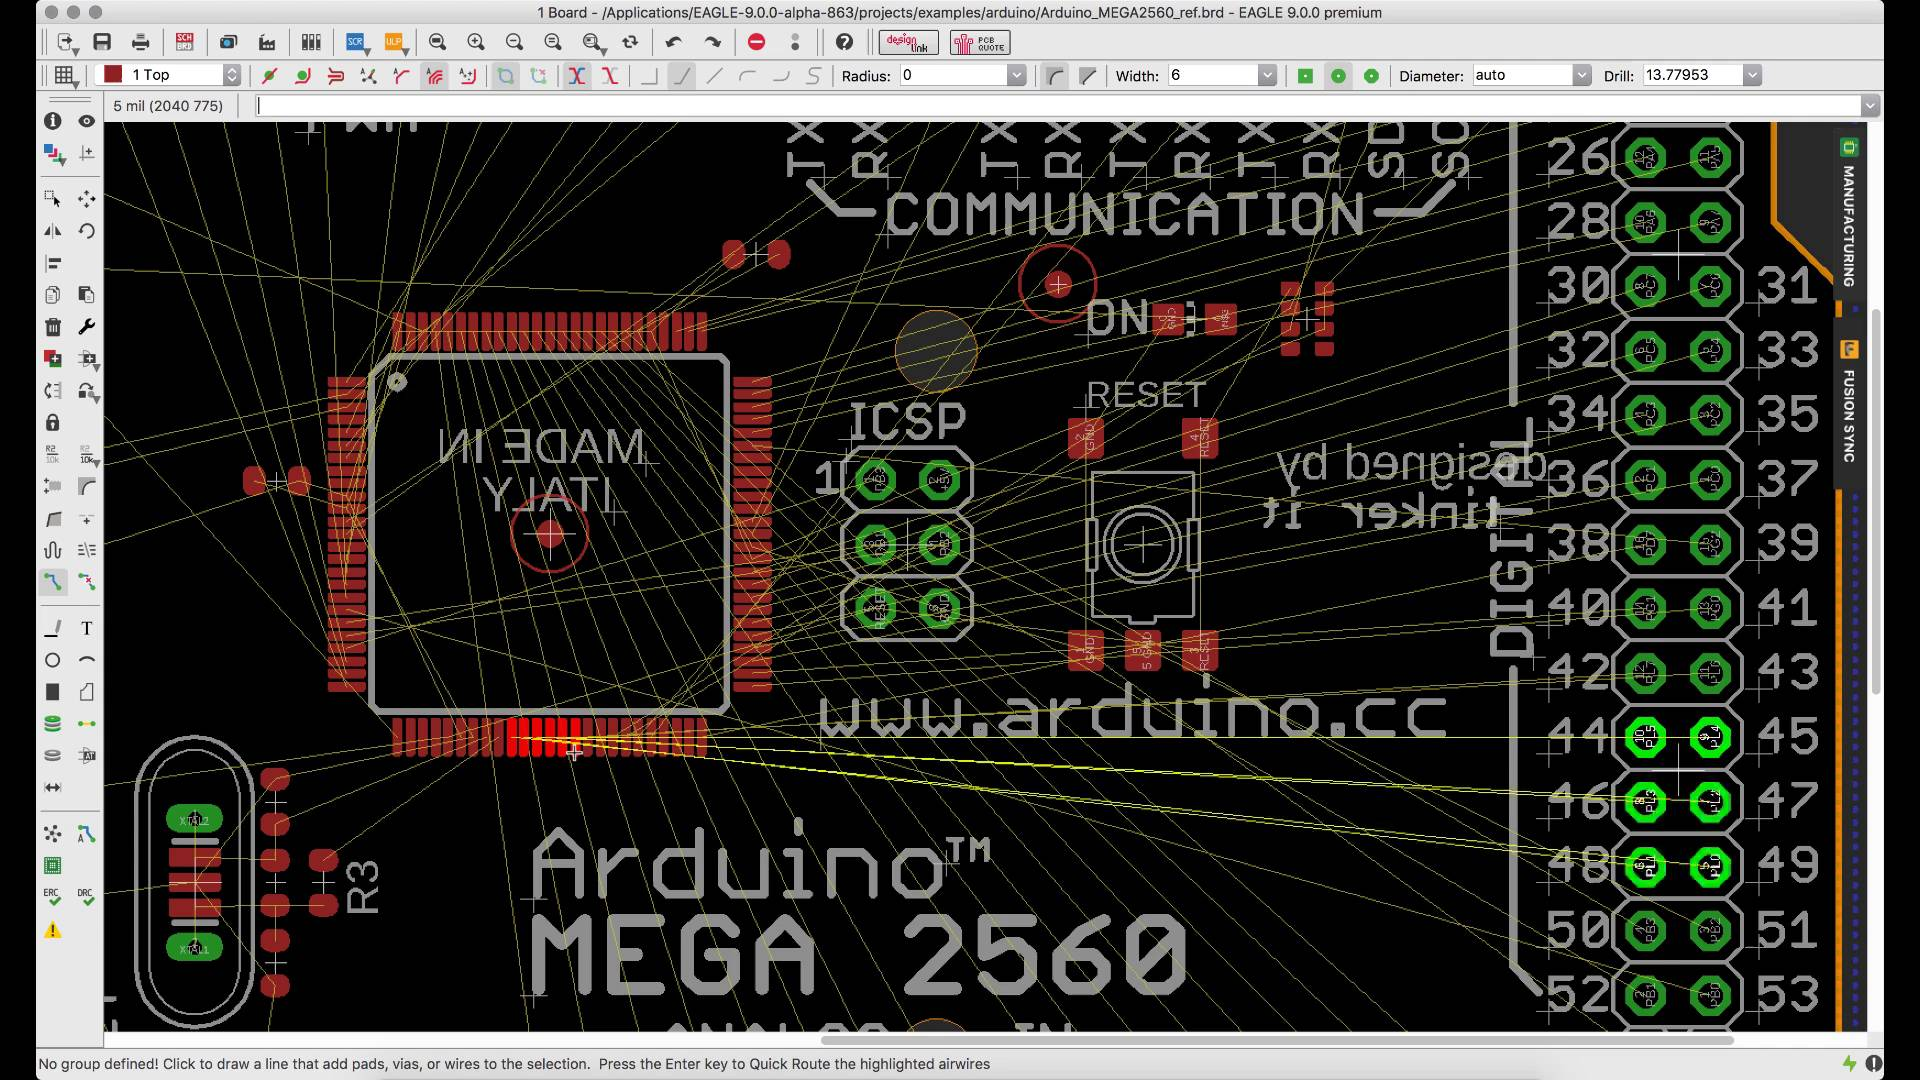 eagle pcb design software autodesk the circuit diagram and board are designed in eaglecad english page [ 1920 x 1080 Pixel ]